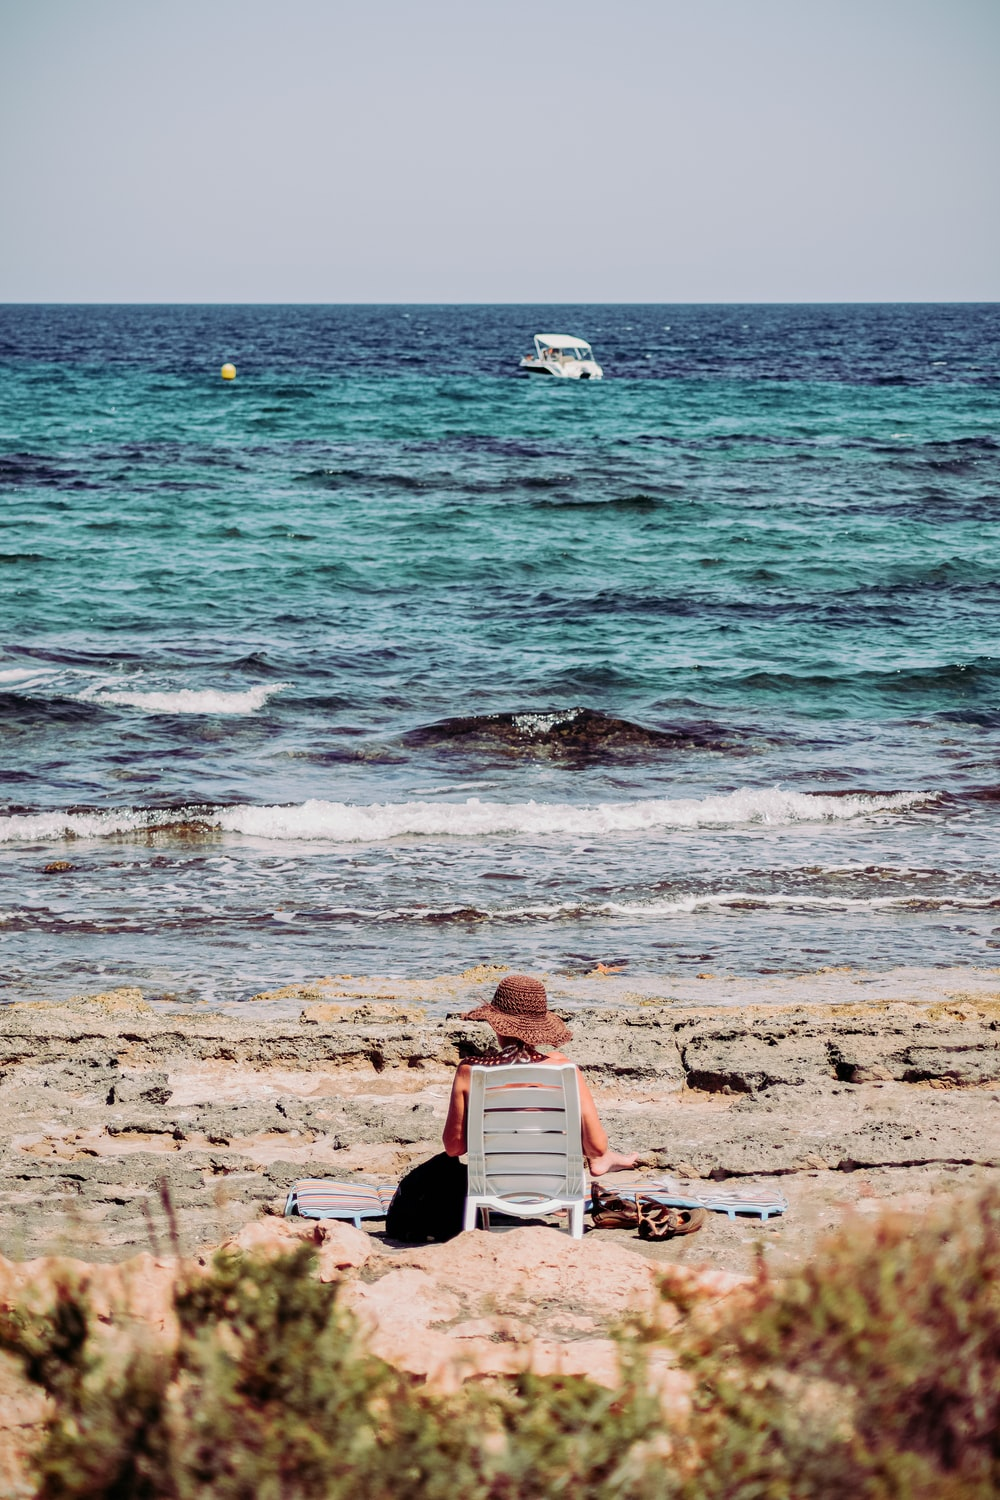 man in black shirt sitting on red and white surfboard on seashore during daytime